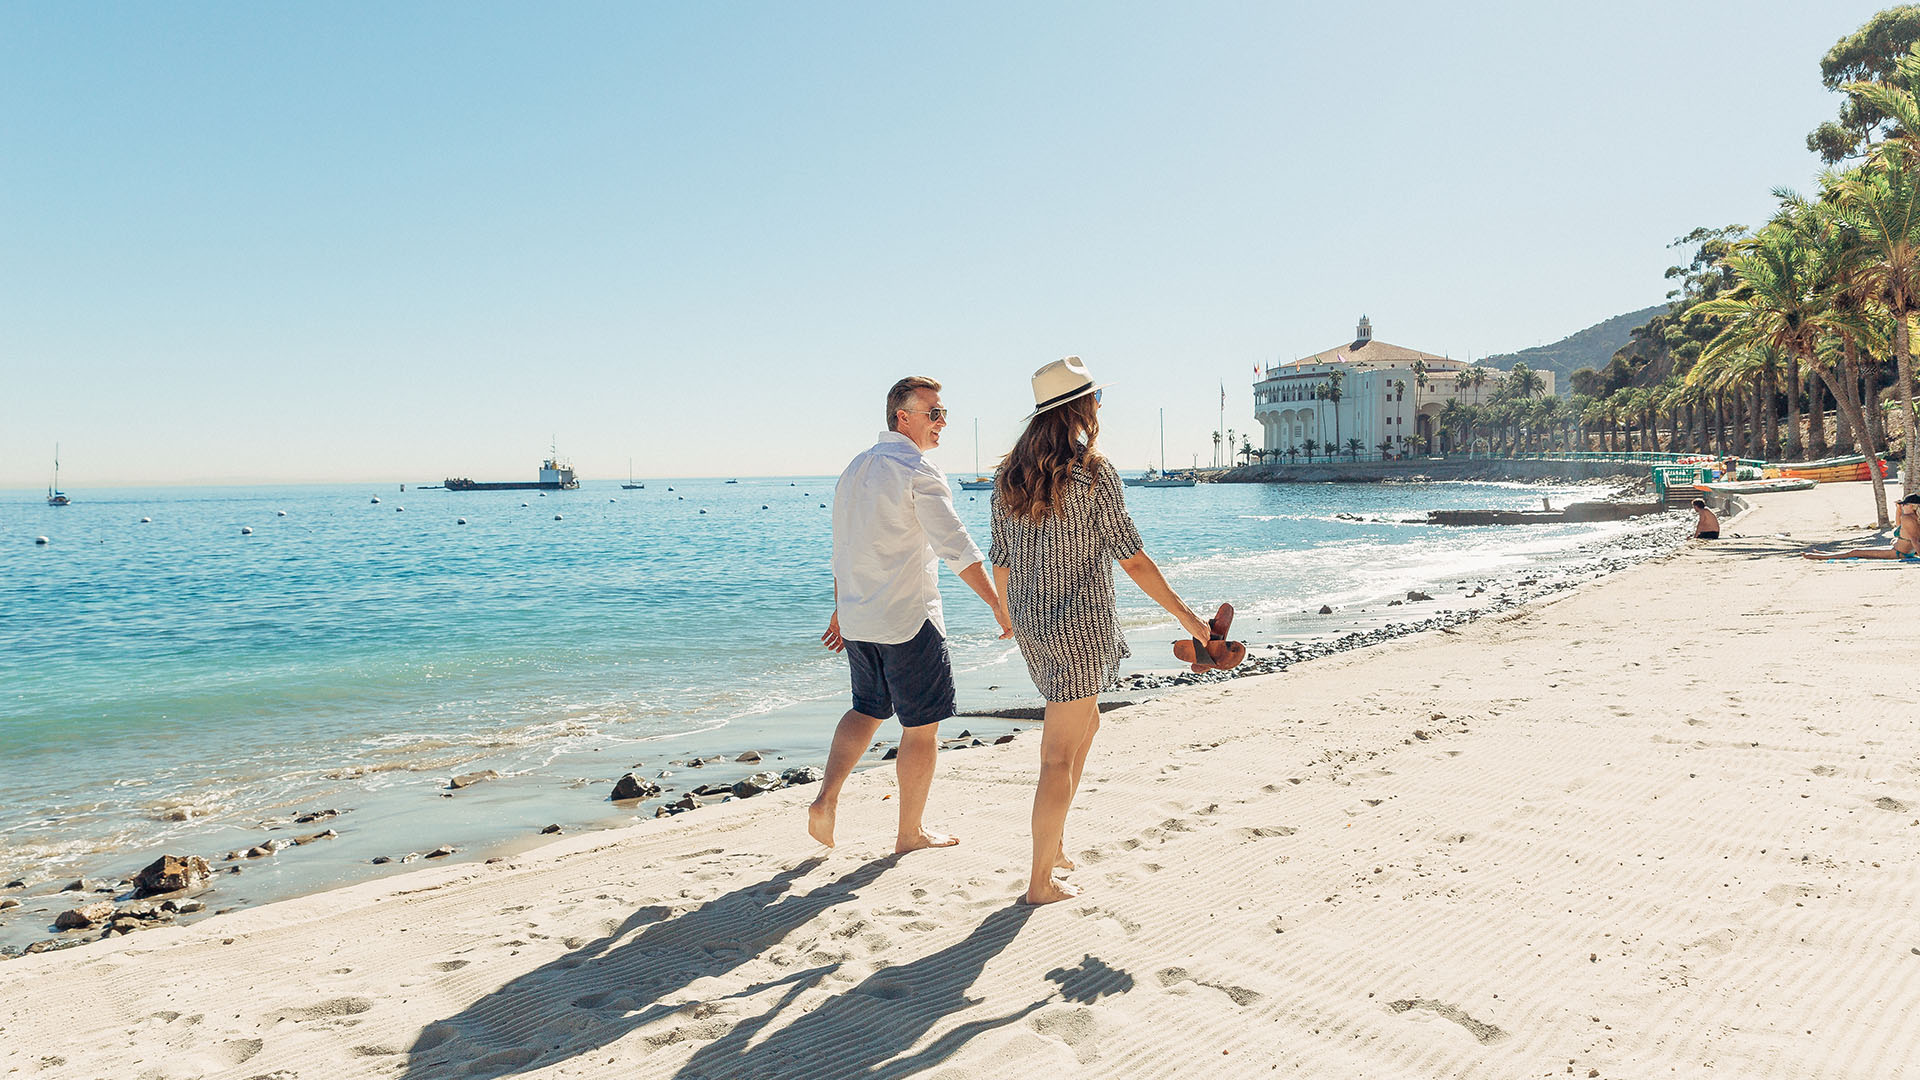 Couple walking on the beach with view of the Catalina Island casino in the background